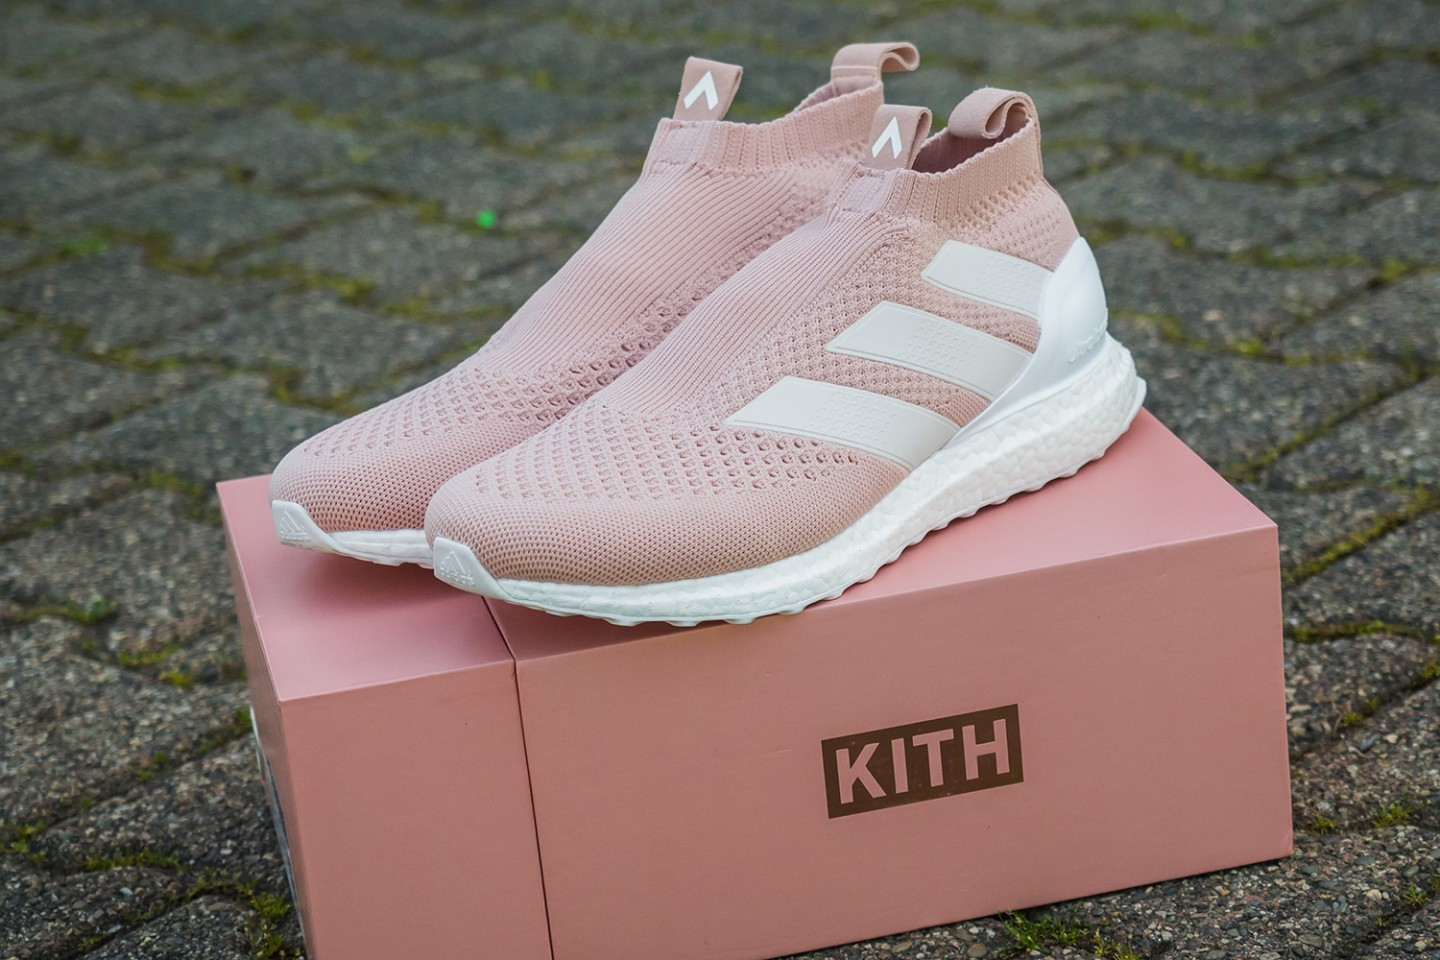 giay the thao adidas 2017 - adidas x Kith Ace 16+ PureControl Ultra Boost - elle man 3